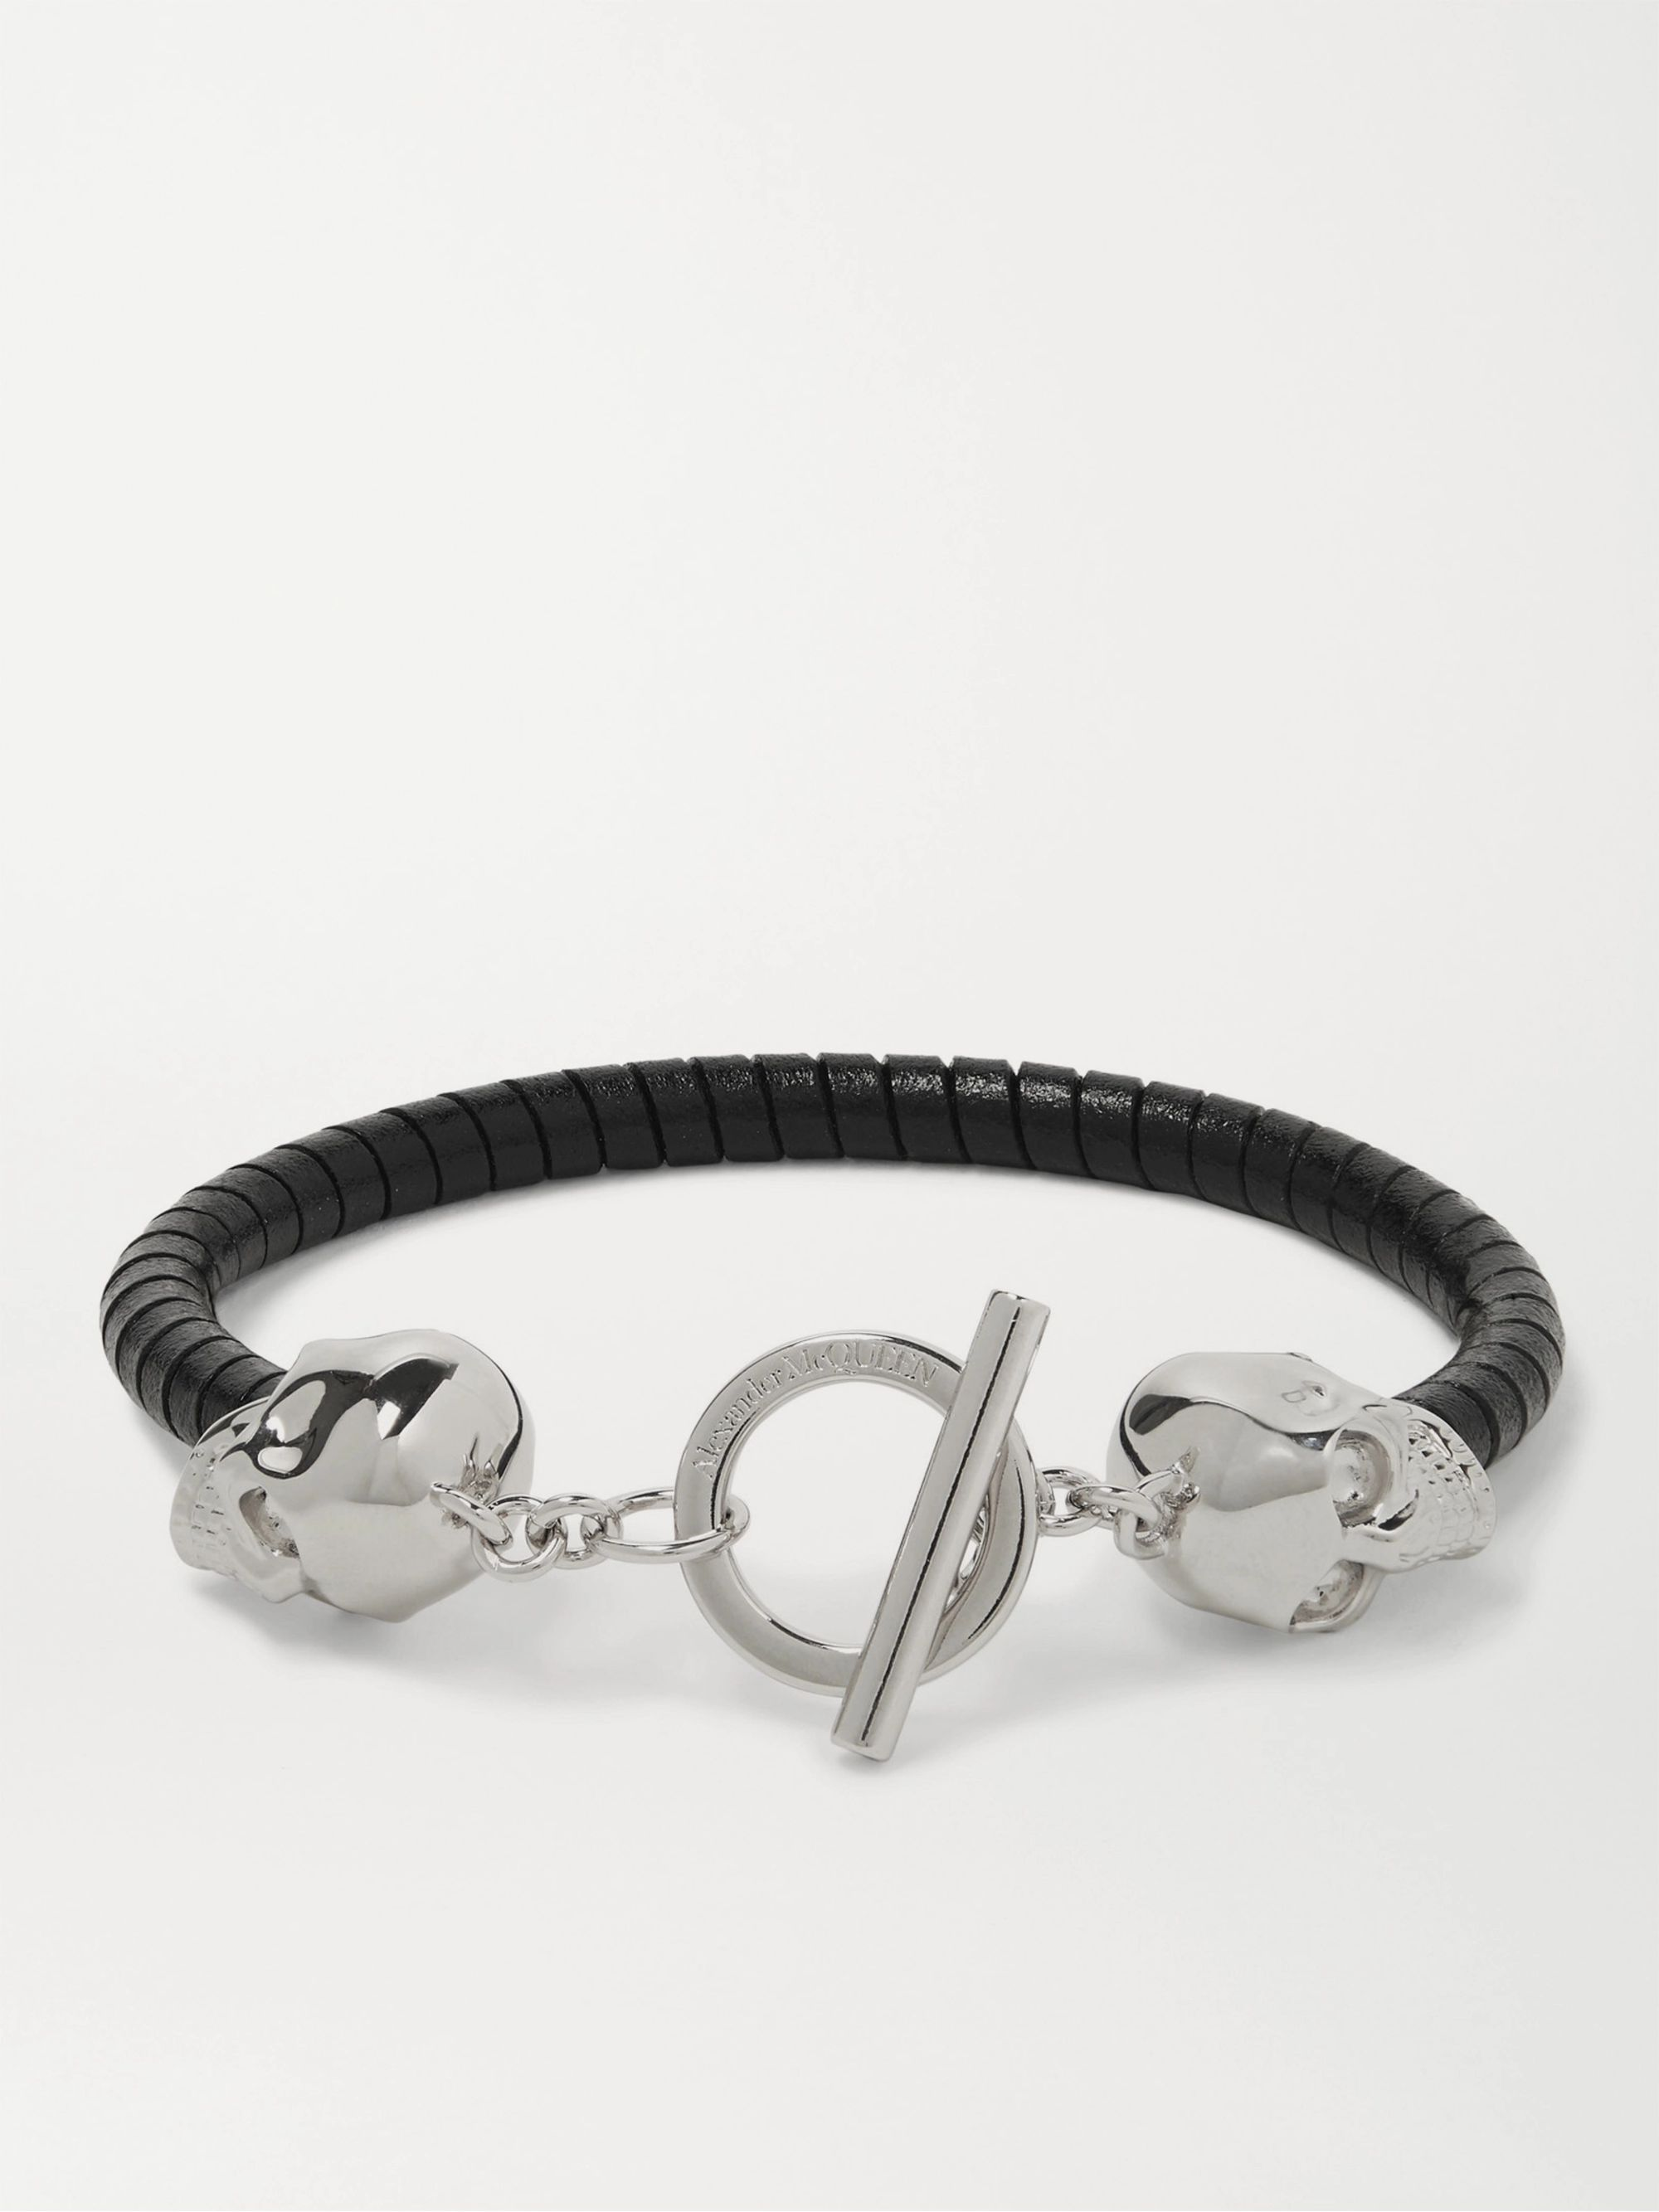 알렉산더 맥퀸 팔찌 Alexander McQueen Silver-Tone and Leather Bracelet,Black